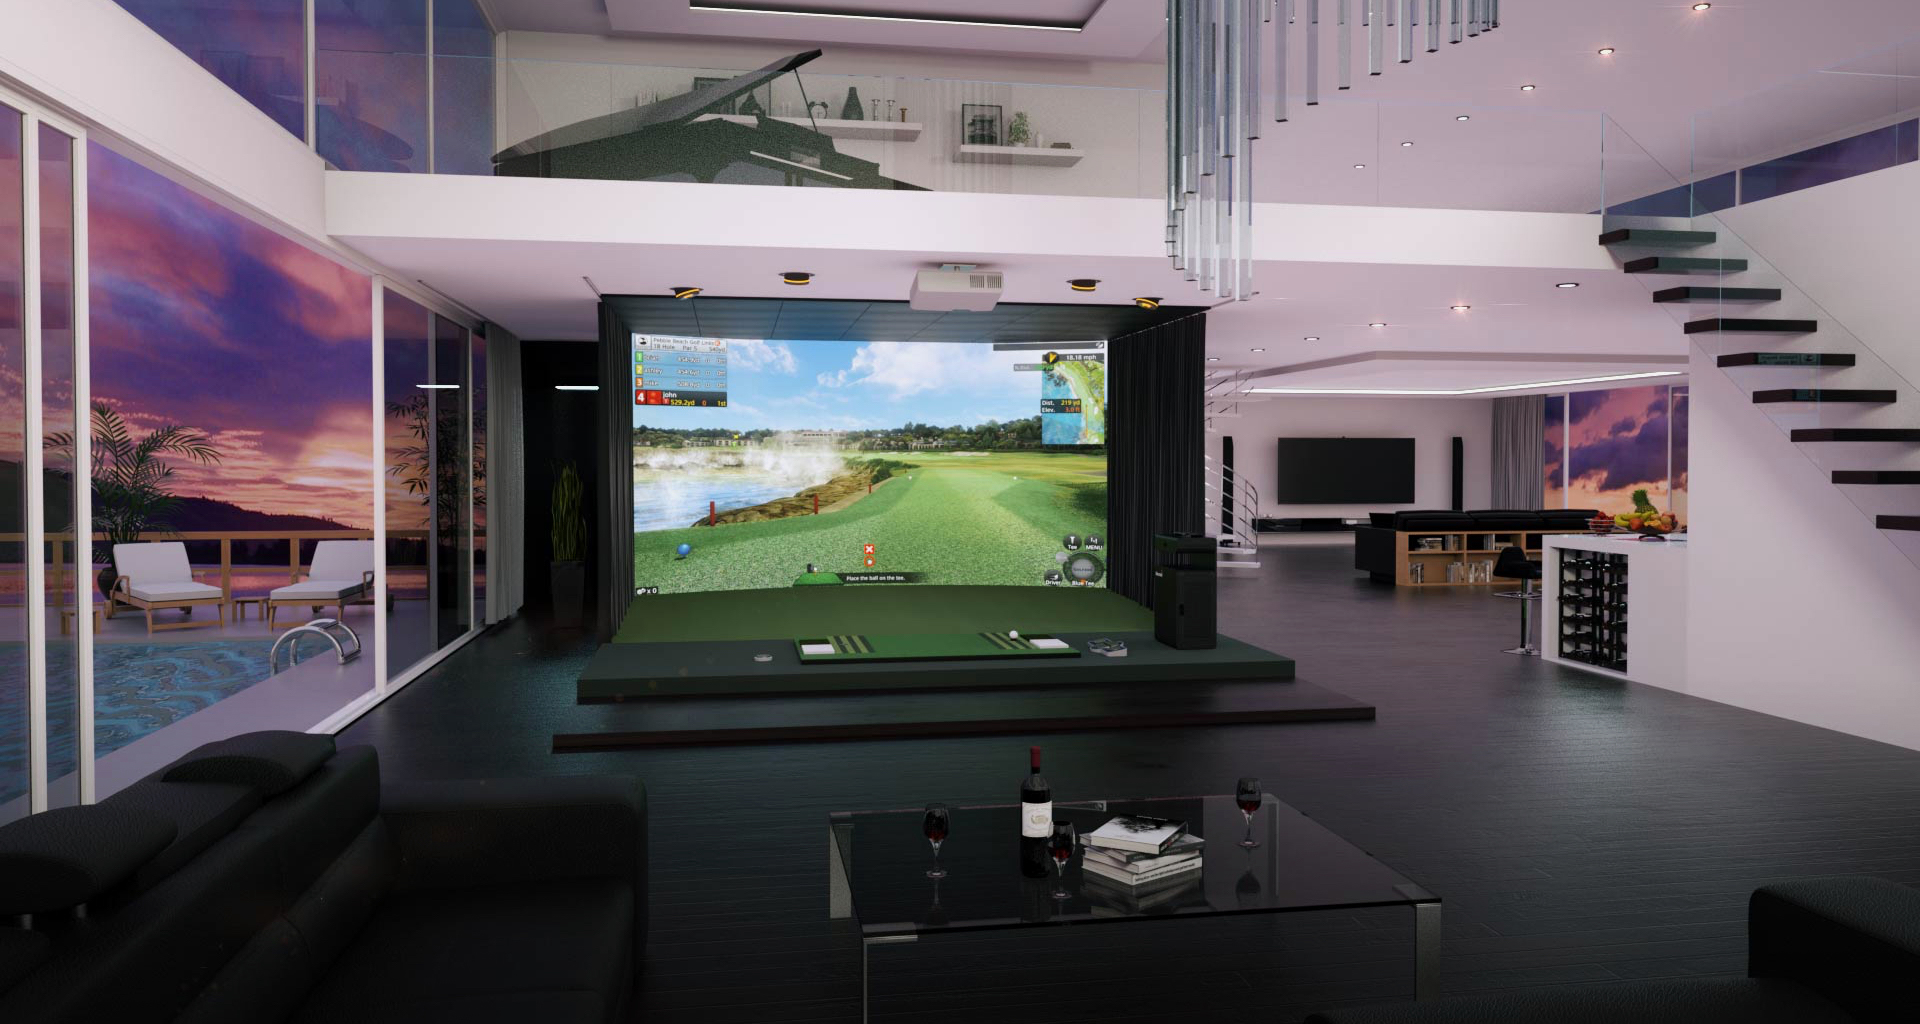 The power of the golf ball in northfield chicago golf report for Home zone wallpaper northfield